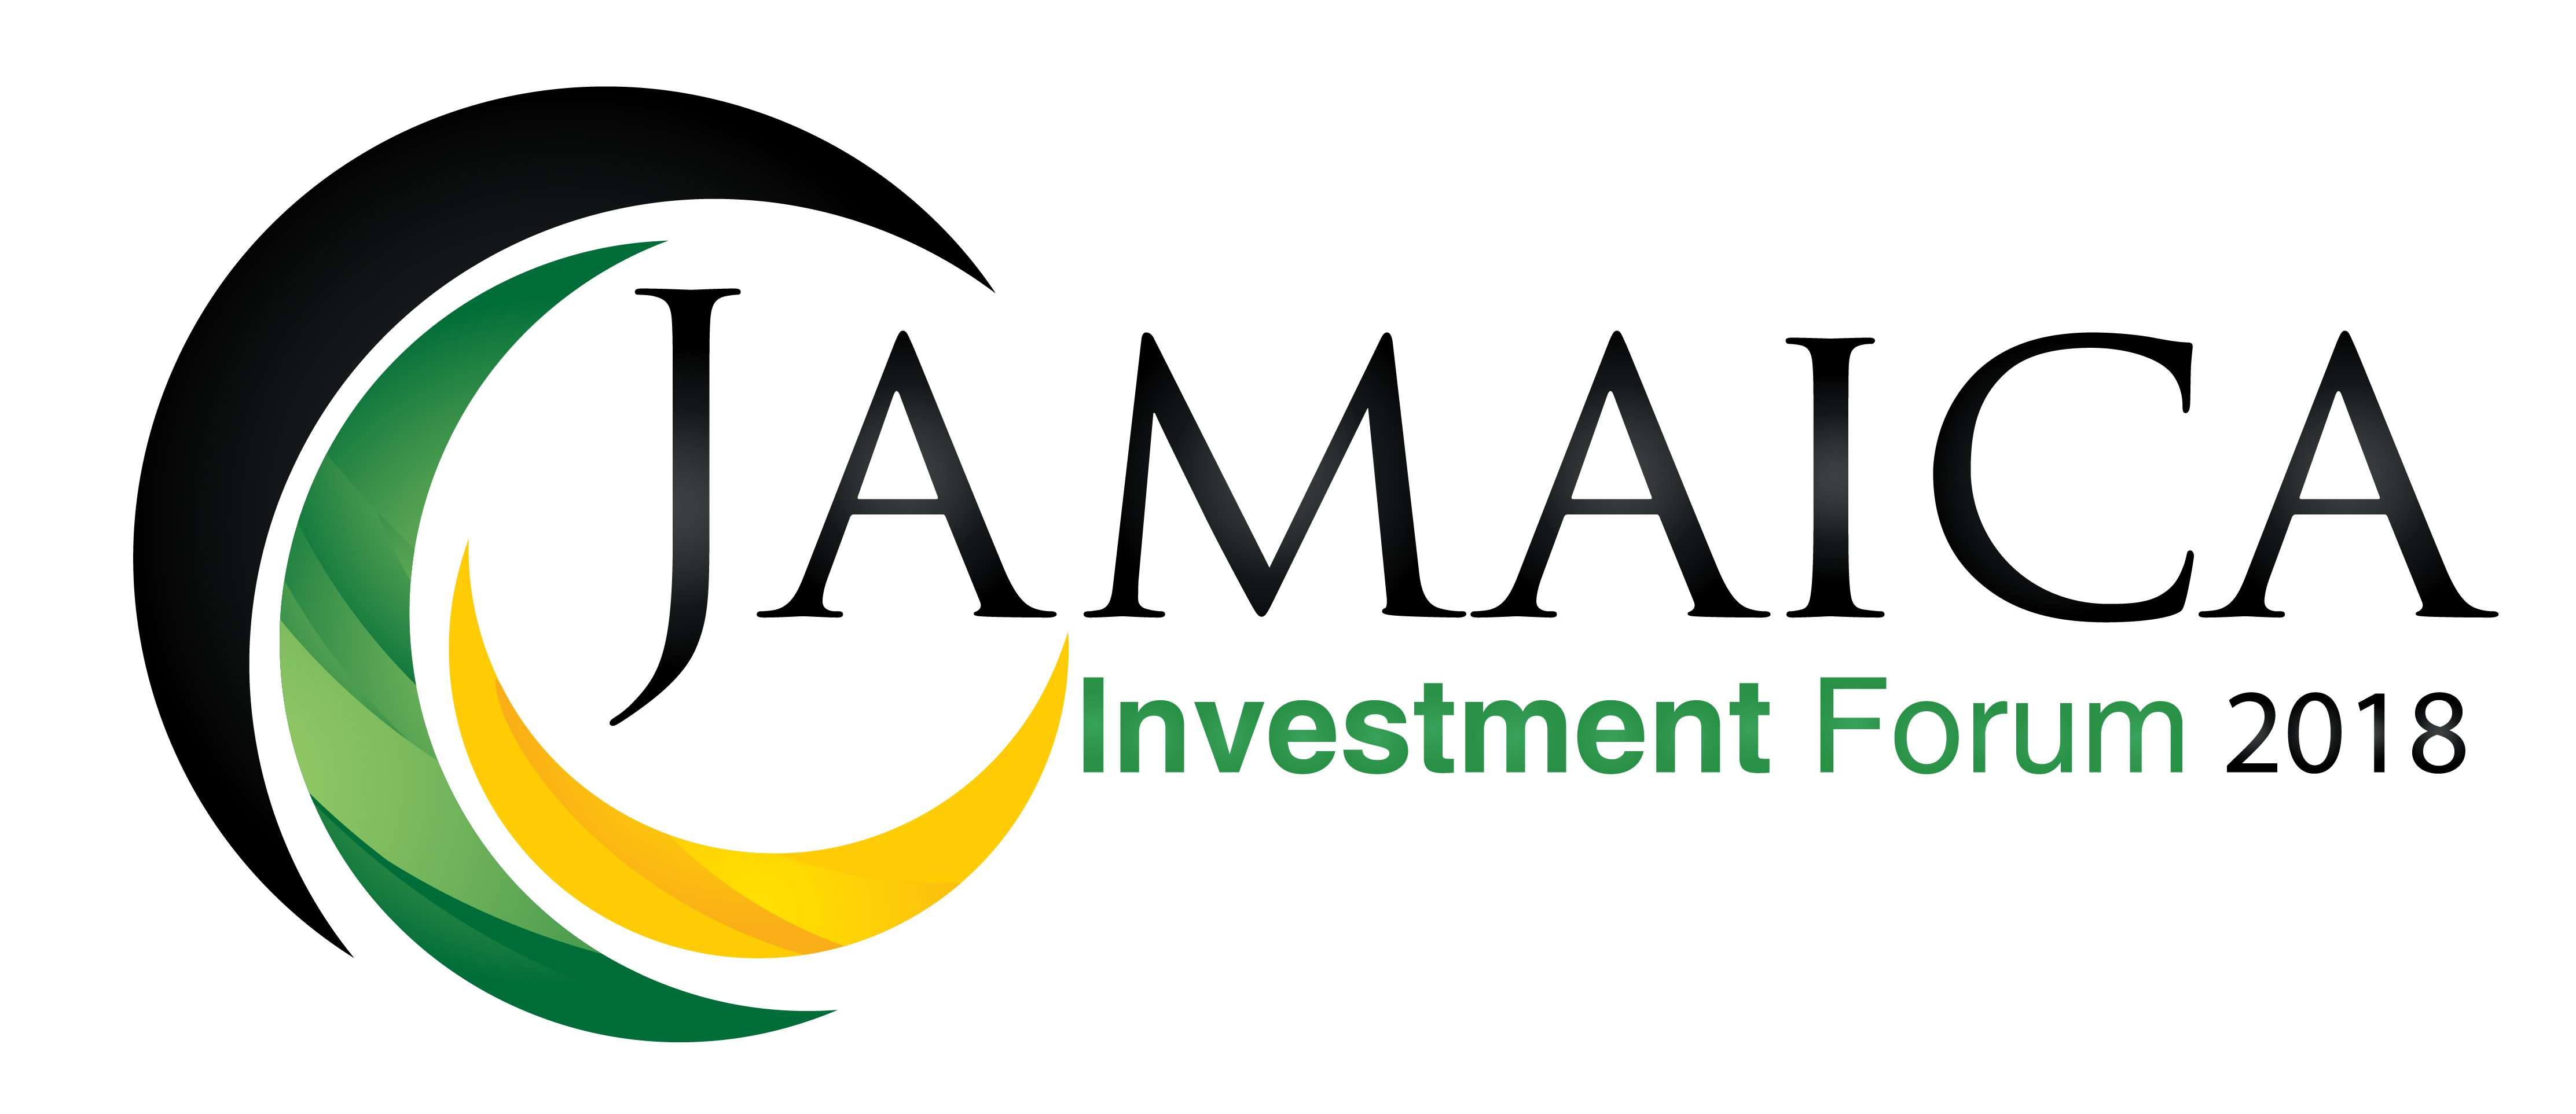 World Bank Gives Jamaica Thumbs Up at 2018 Investment Forum